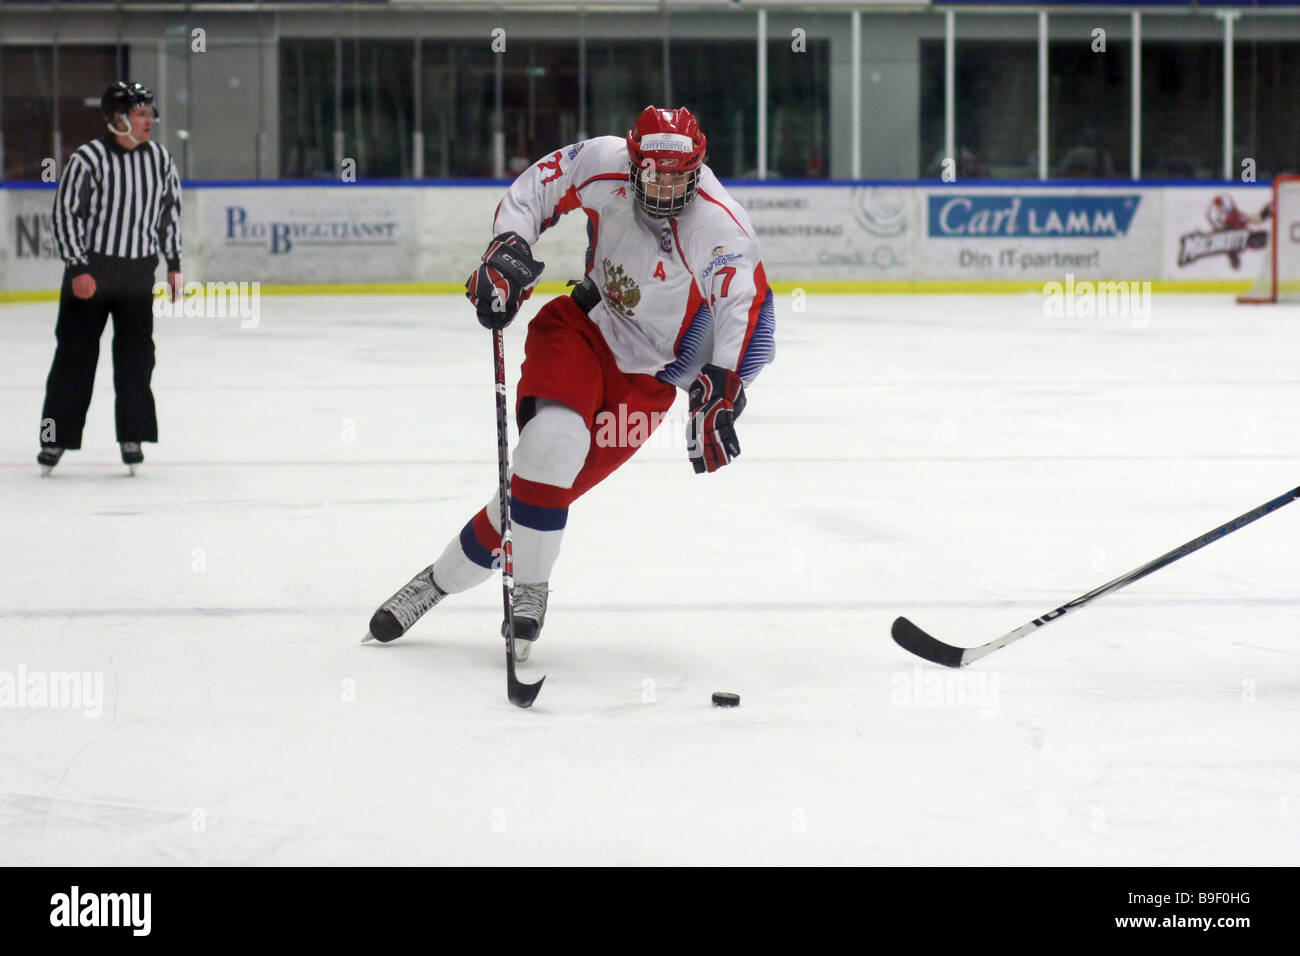 Russian ice-hockey player No 27 Stanislav Solovyev - Stock Image